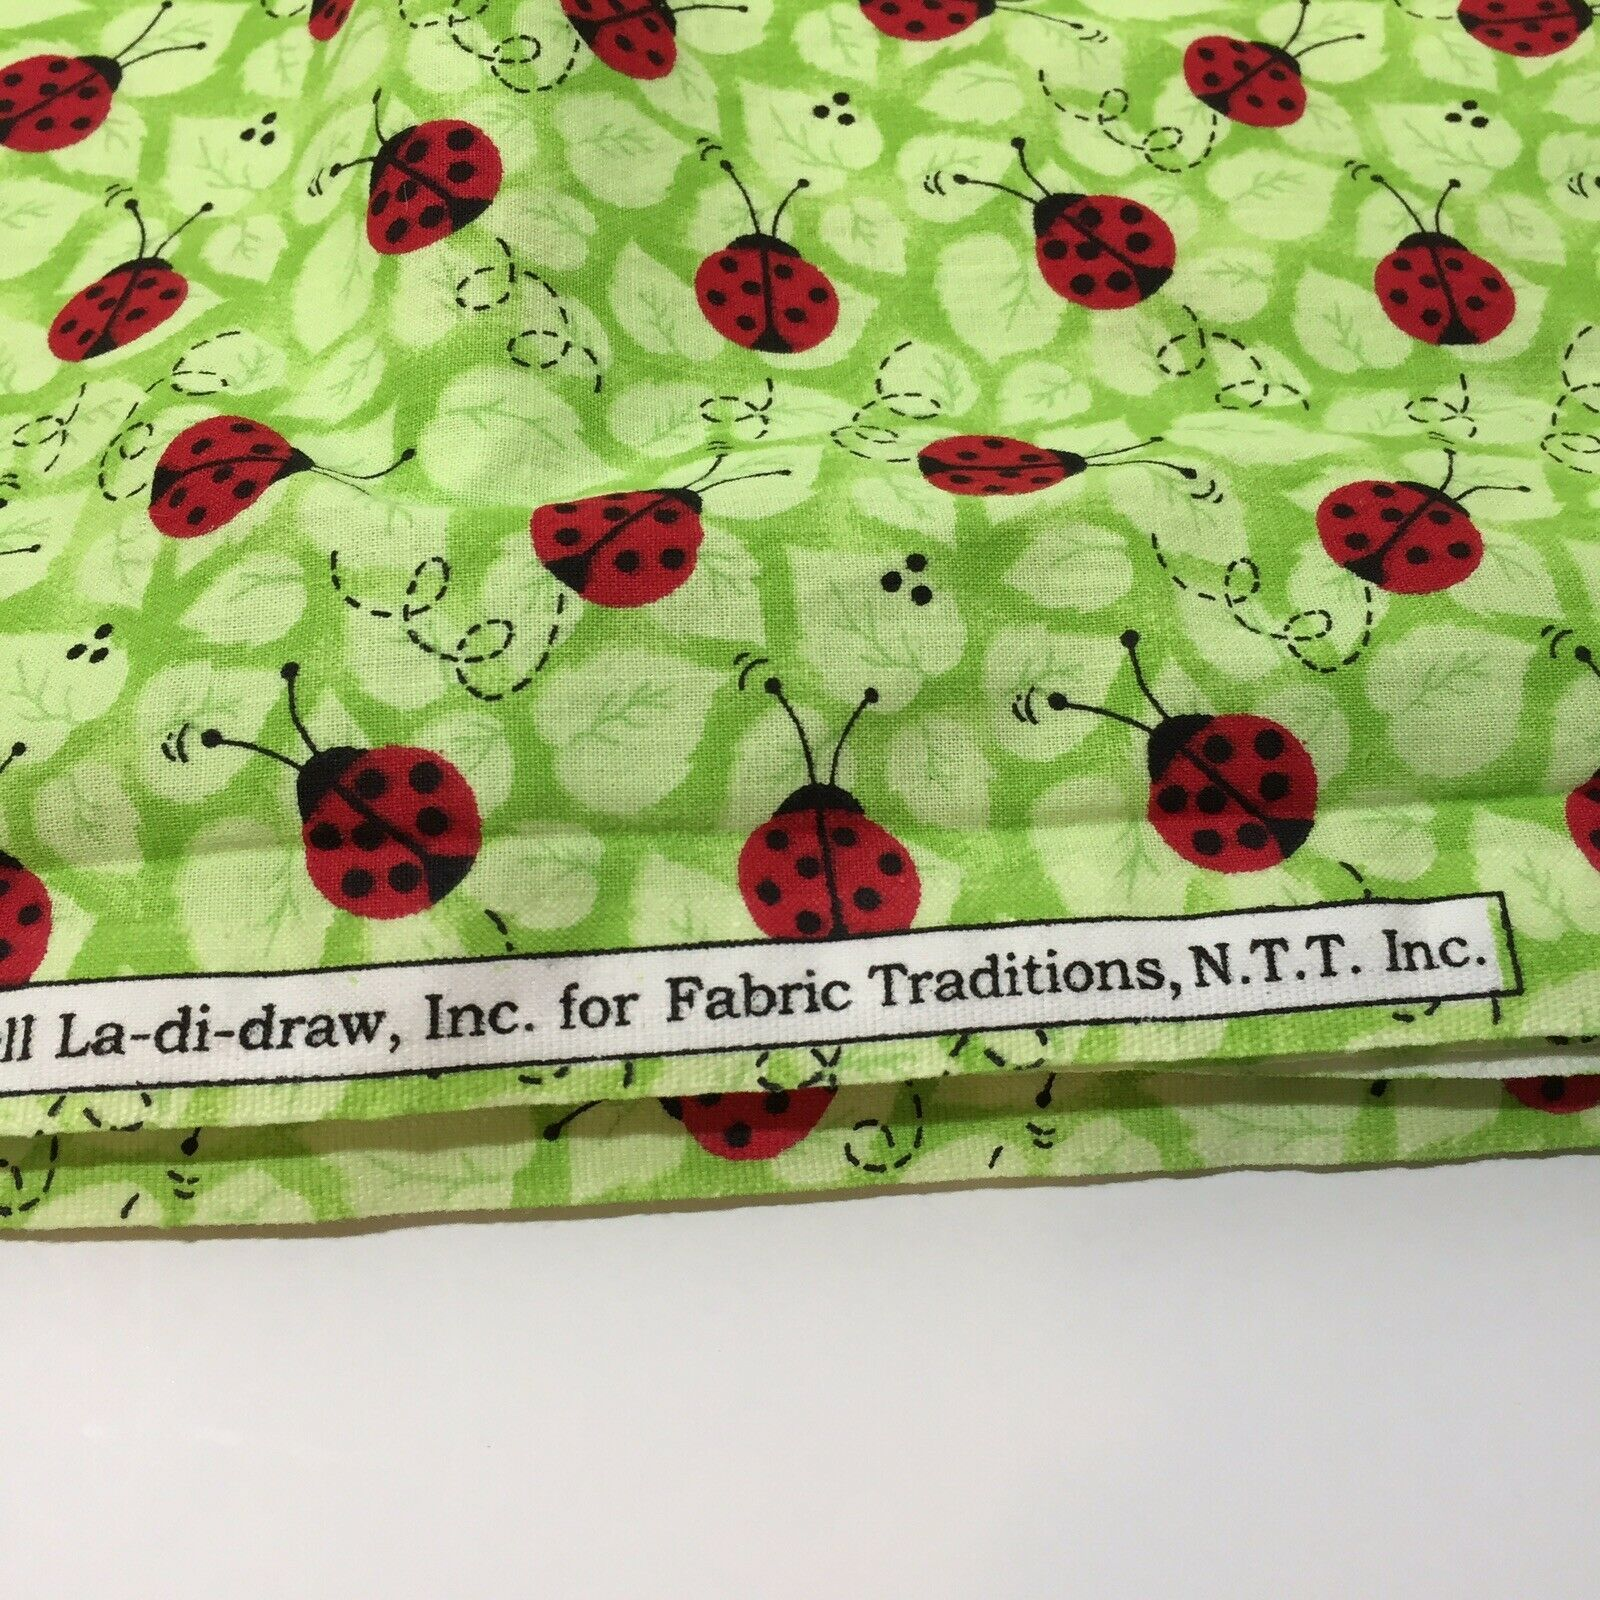 "2 & 7/8 Yards Charms Patty Reed Designs Fabric 42""w 100% Cotton Ladybugs"